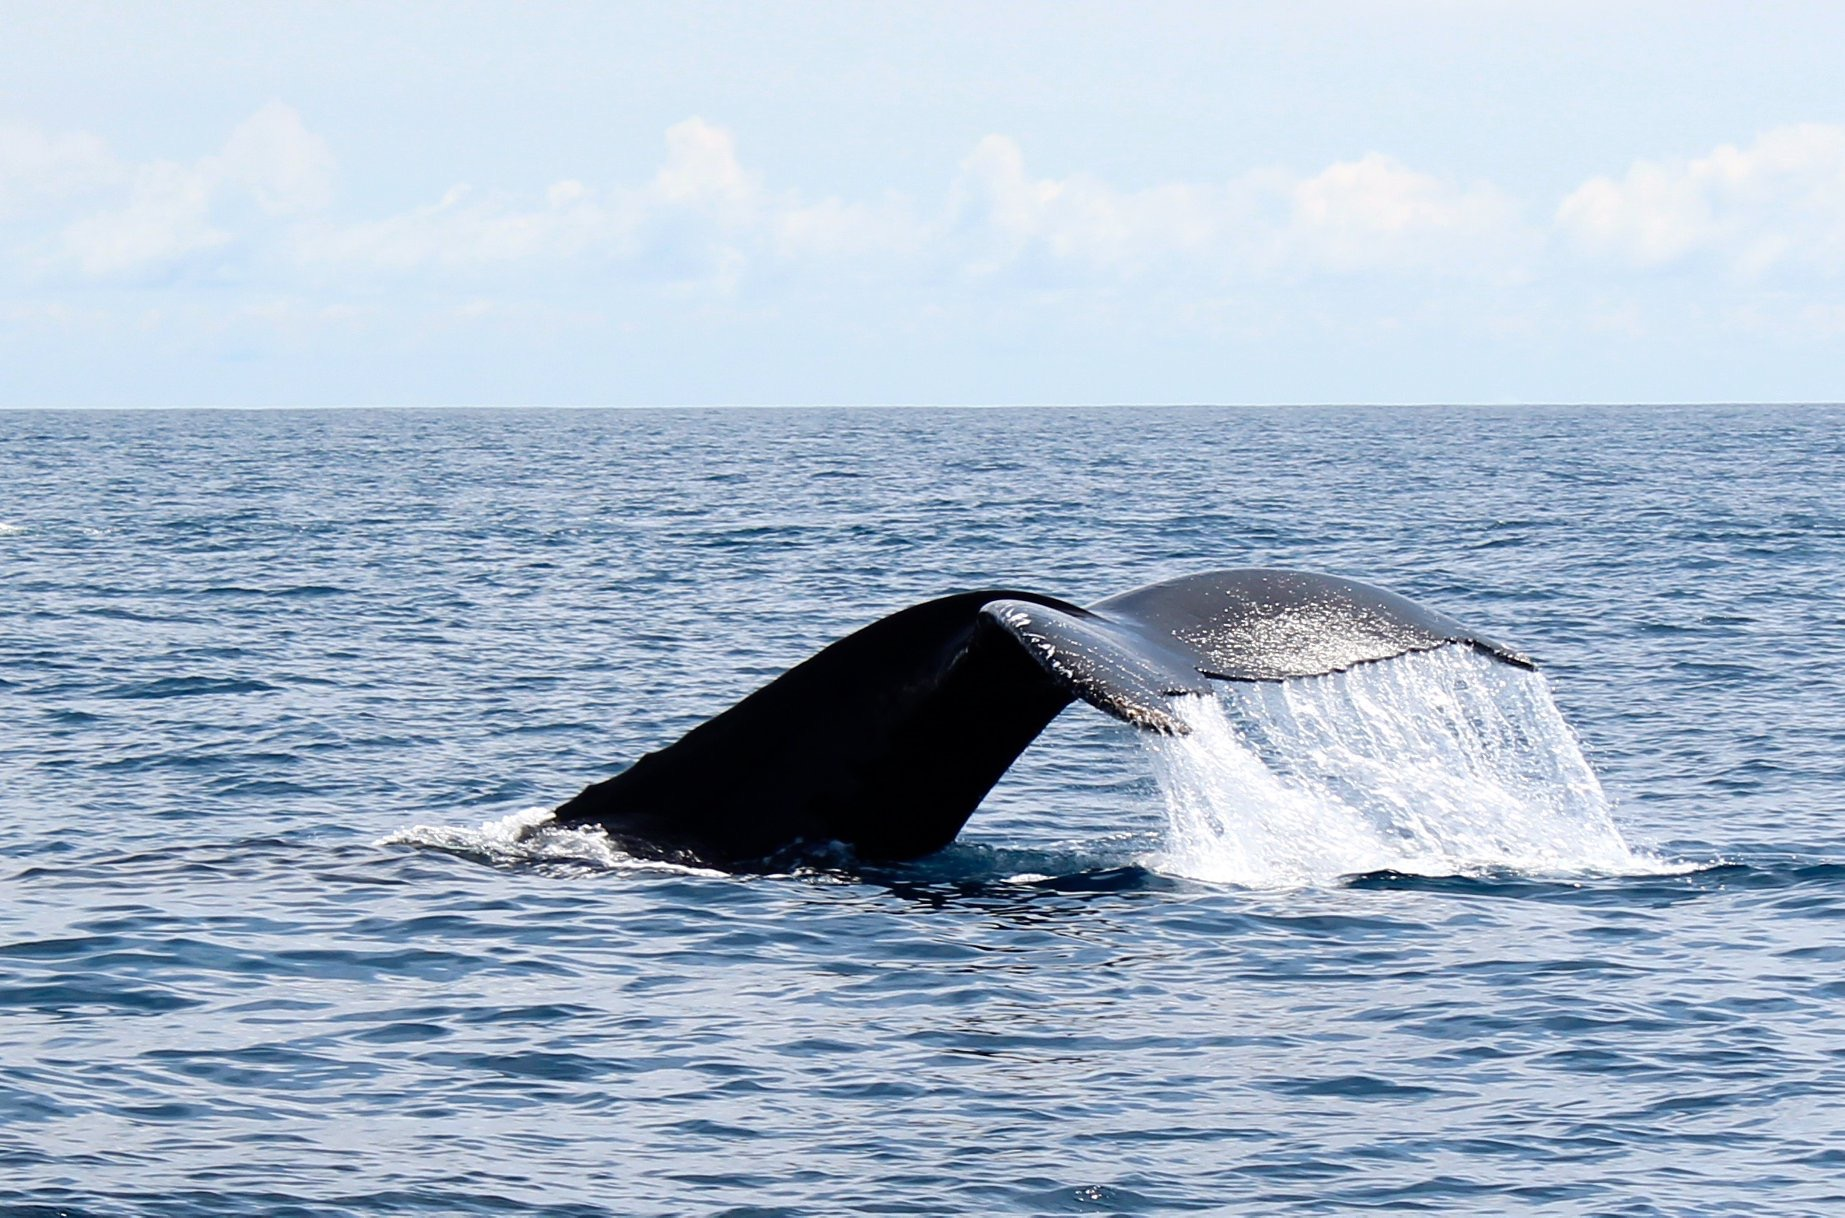 whale-breaching-with-tail-slap